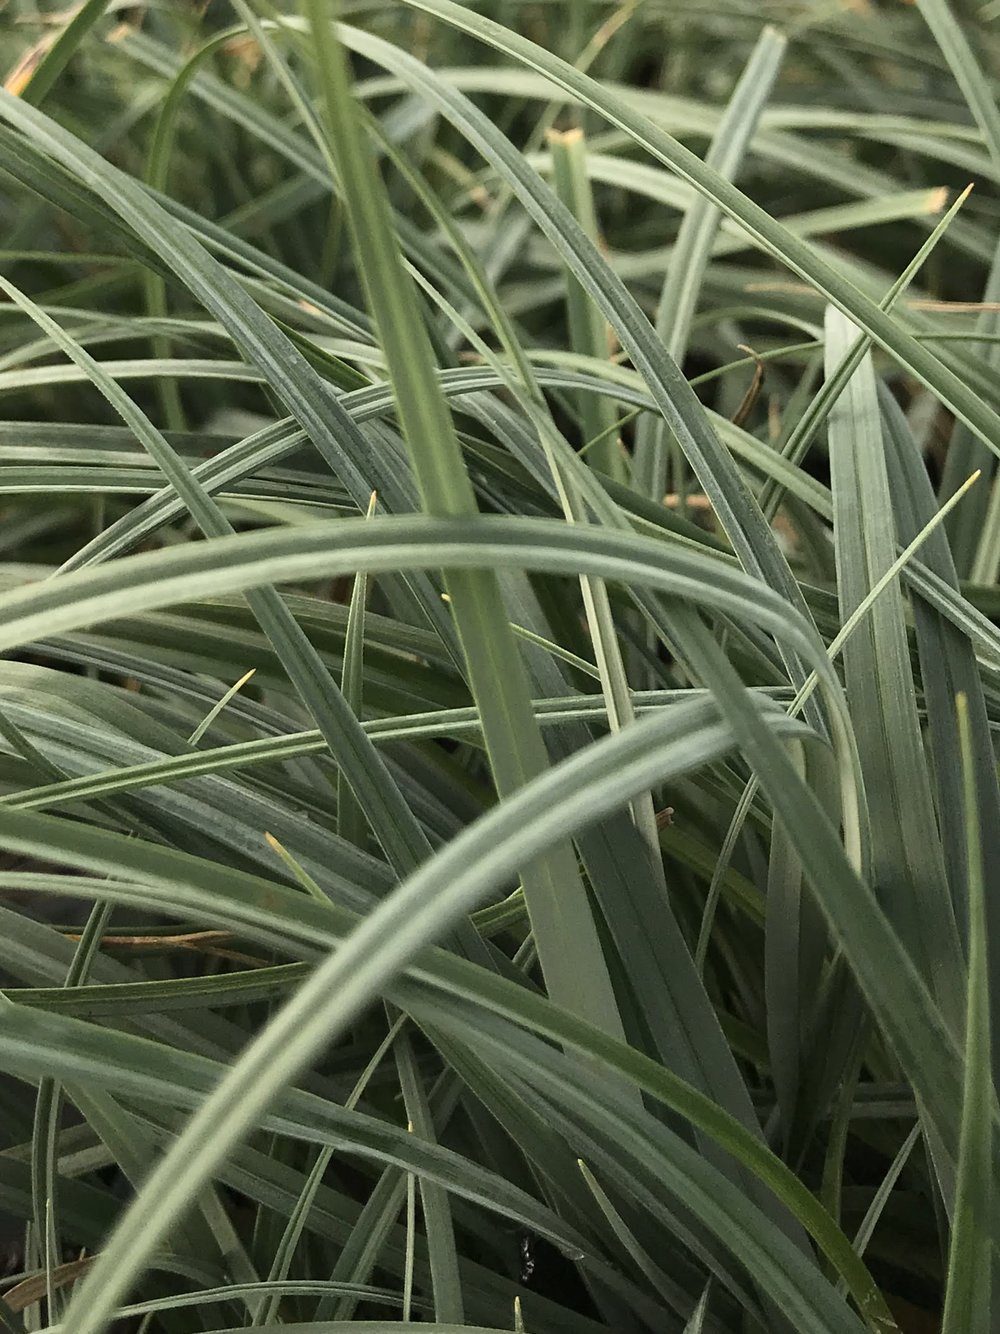 Carex flacca 'Blue Zinger' 1 gallon